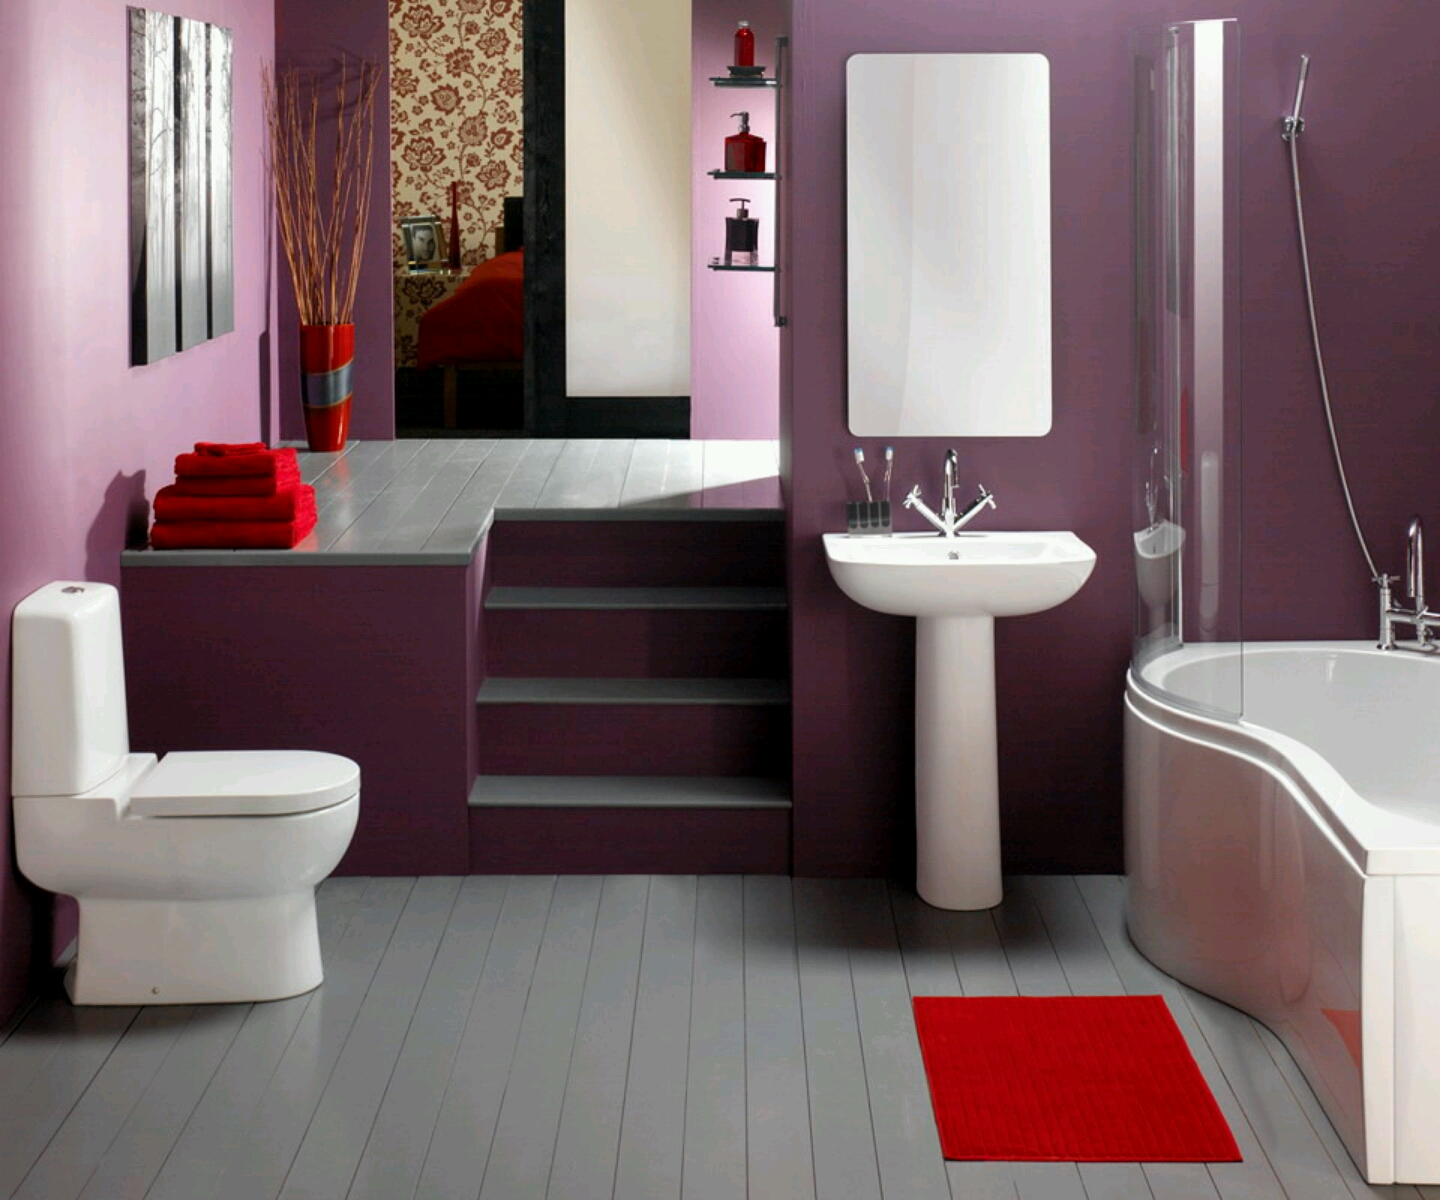 Modern Homes Modern Bathrooms Designs Ideas: New Home Designs Latest.: Luxury Modern Bathrooms Designs